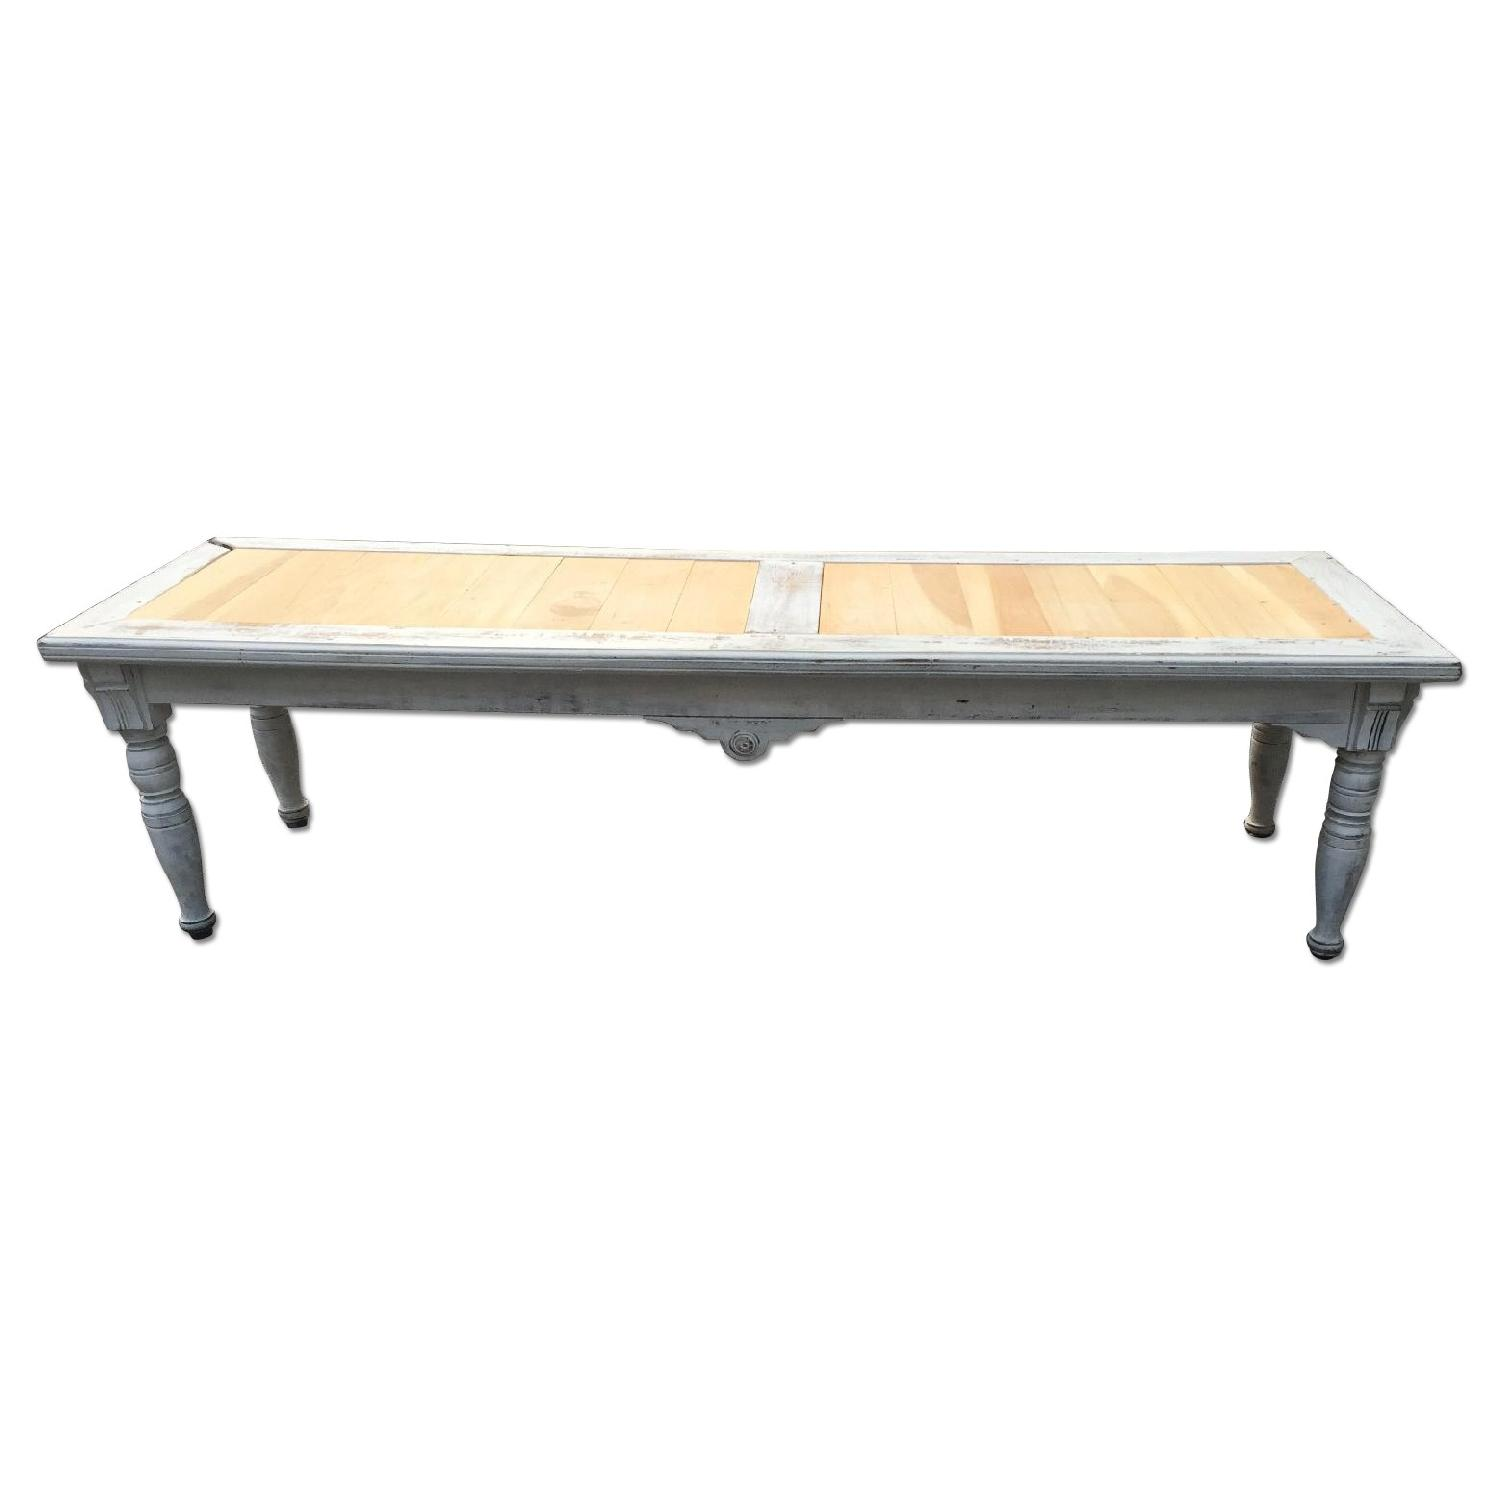 Refurbished Vintage Table - image-0